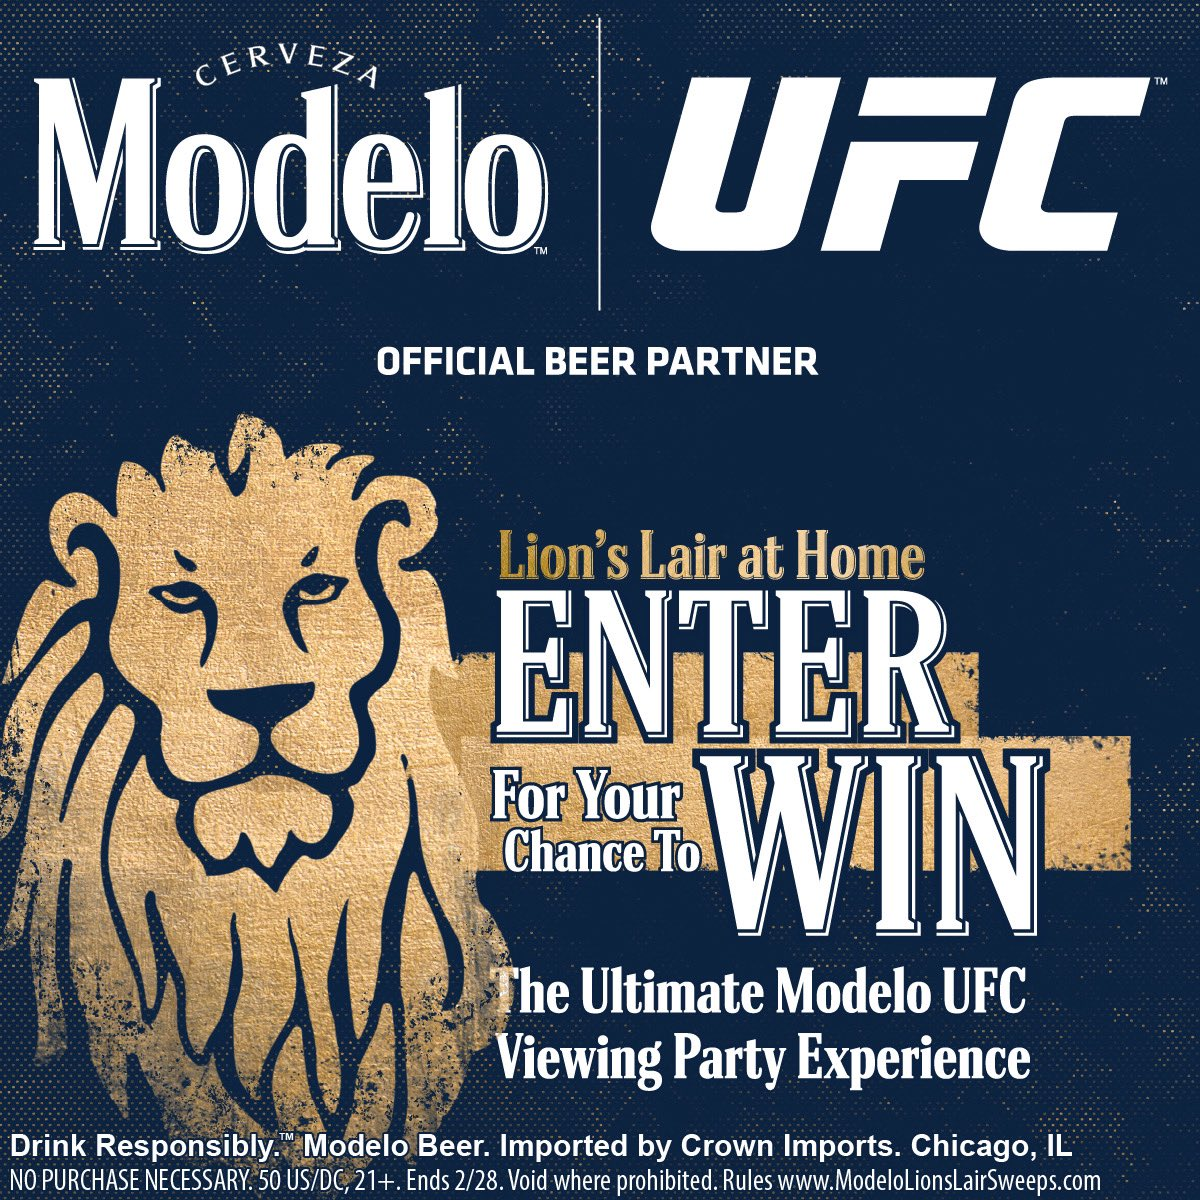 Enter the @ModeloUSA Lion's Lair at Home Sweepstakes for a chance to win the Ultimate Modelo UFC 259 Viewing Party Experience, including a virtual meet and greet with ME on fight night! #ad NO PURCHASE NECESSARY. 50 US/DC, 21+ Ruleshttps://t.co/IEidqDfqJB https://t.co/ElrHuhPBQW